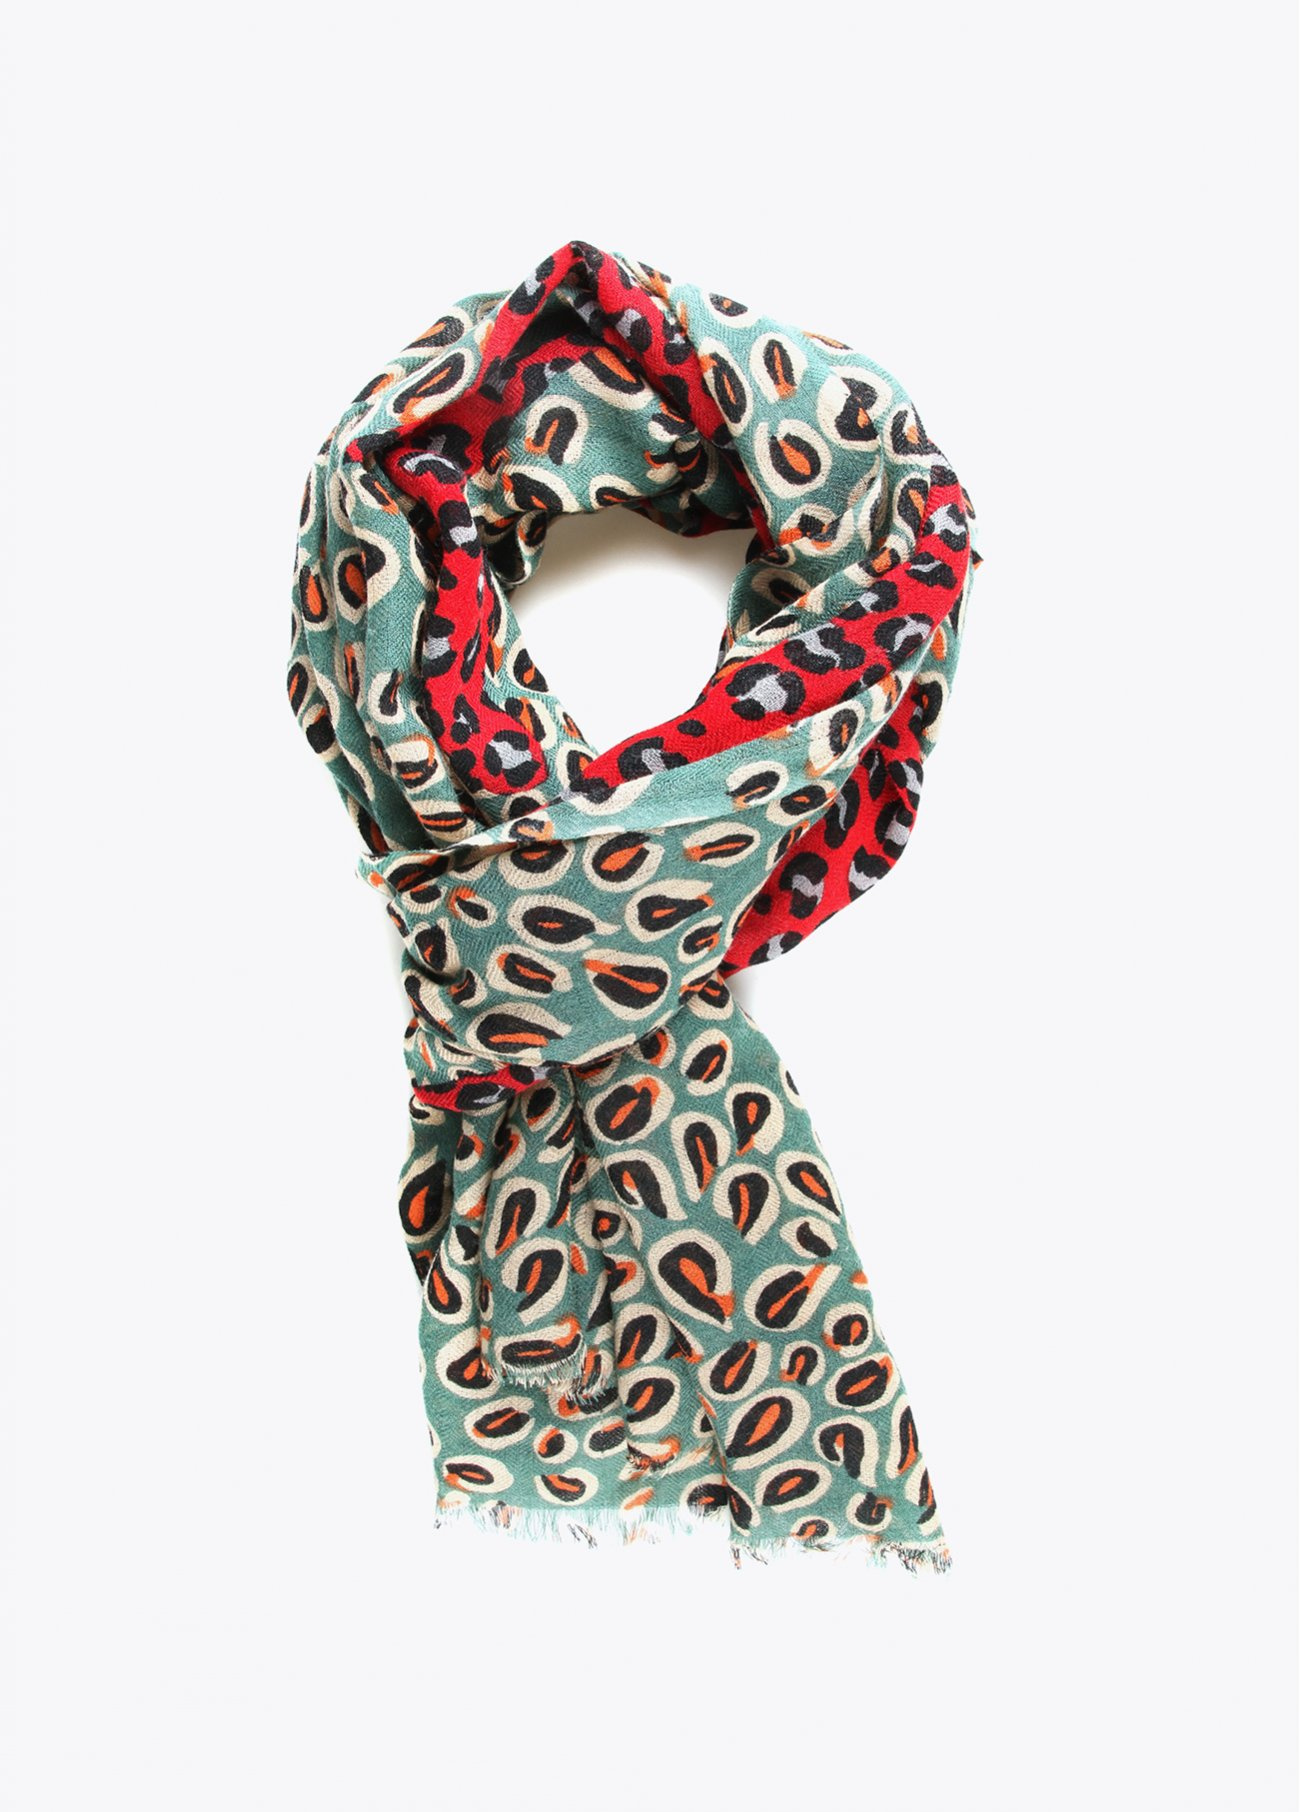 Printed scarf in red and green shades